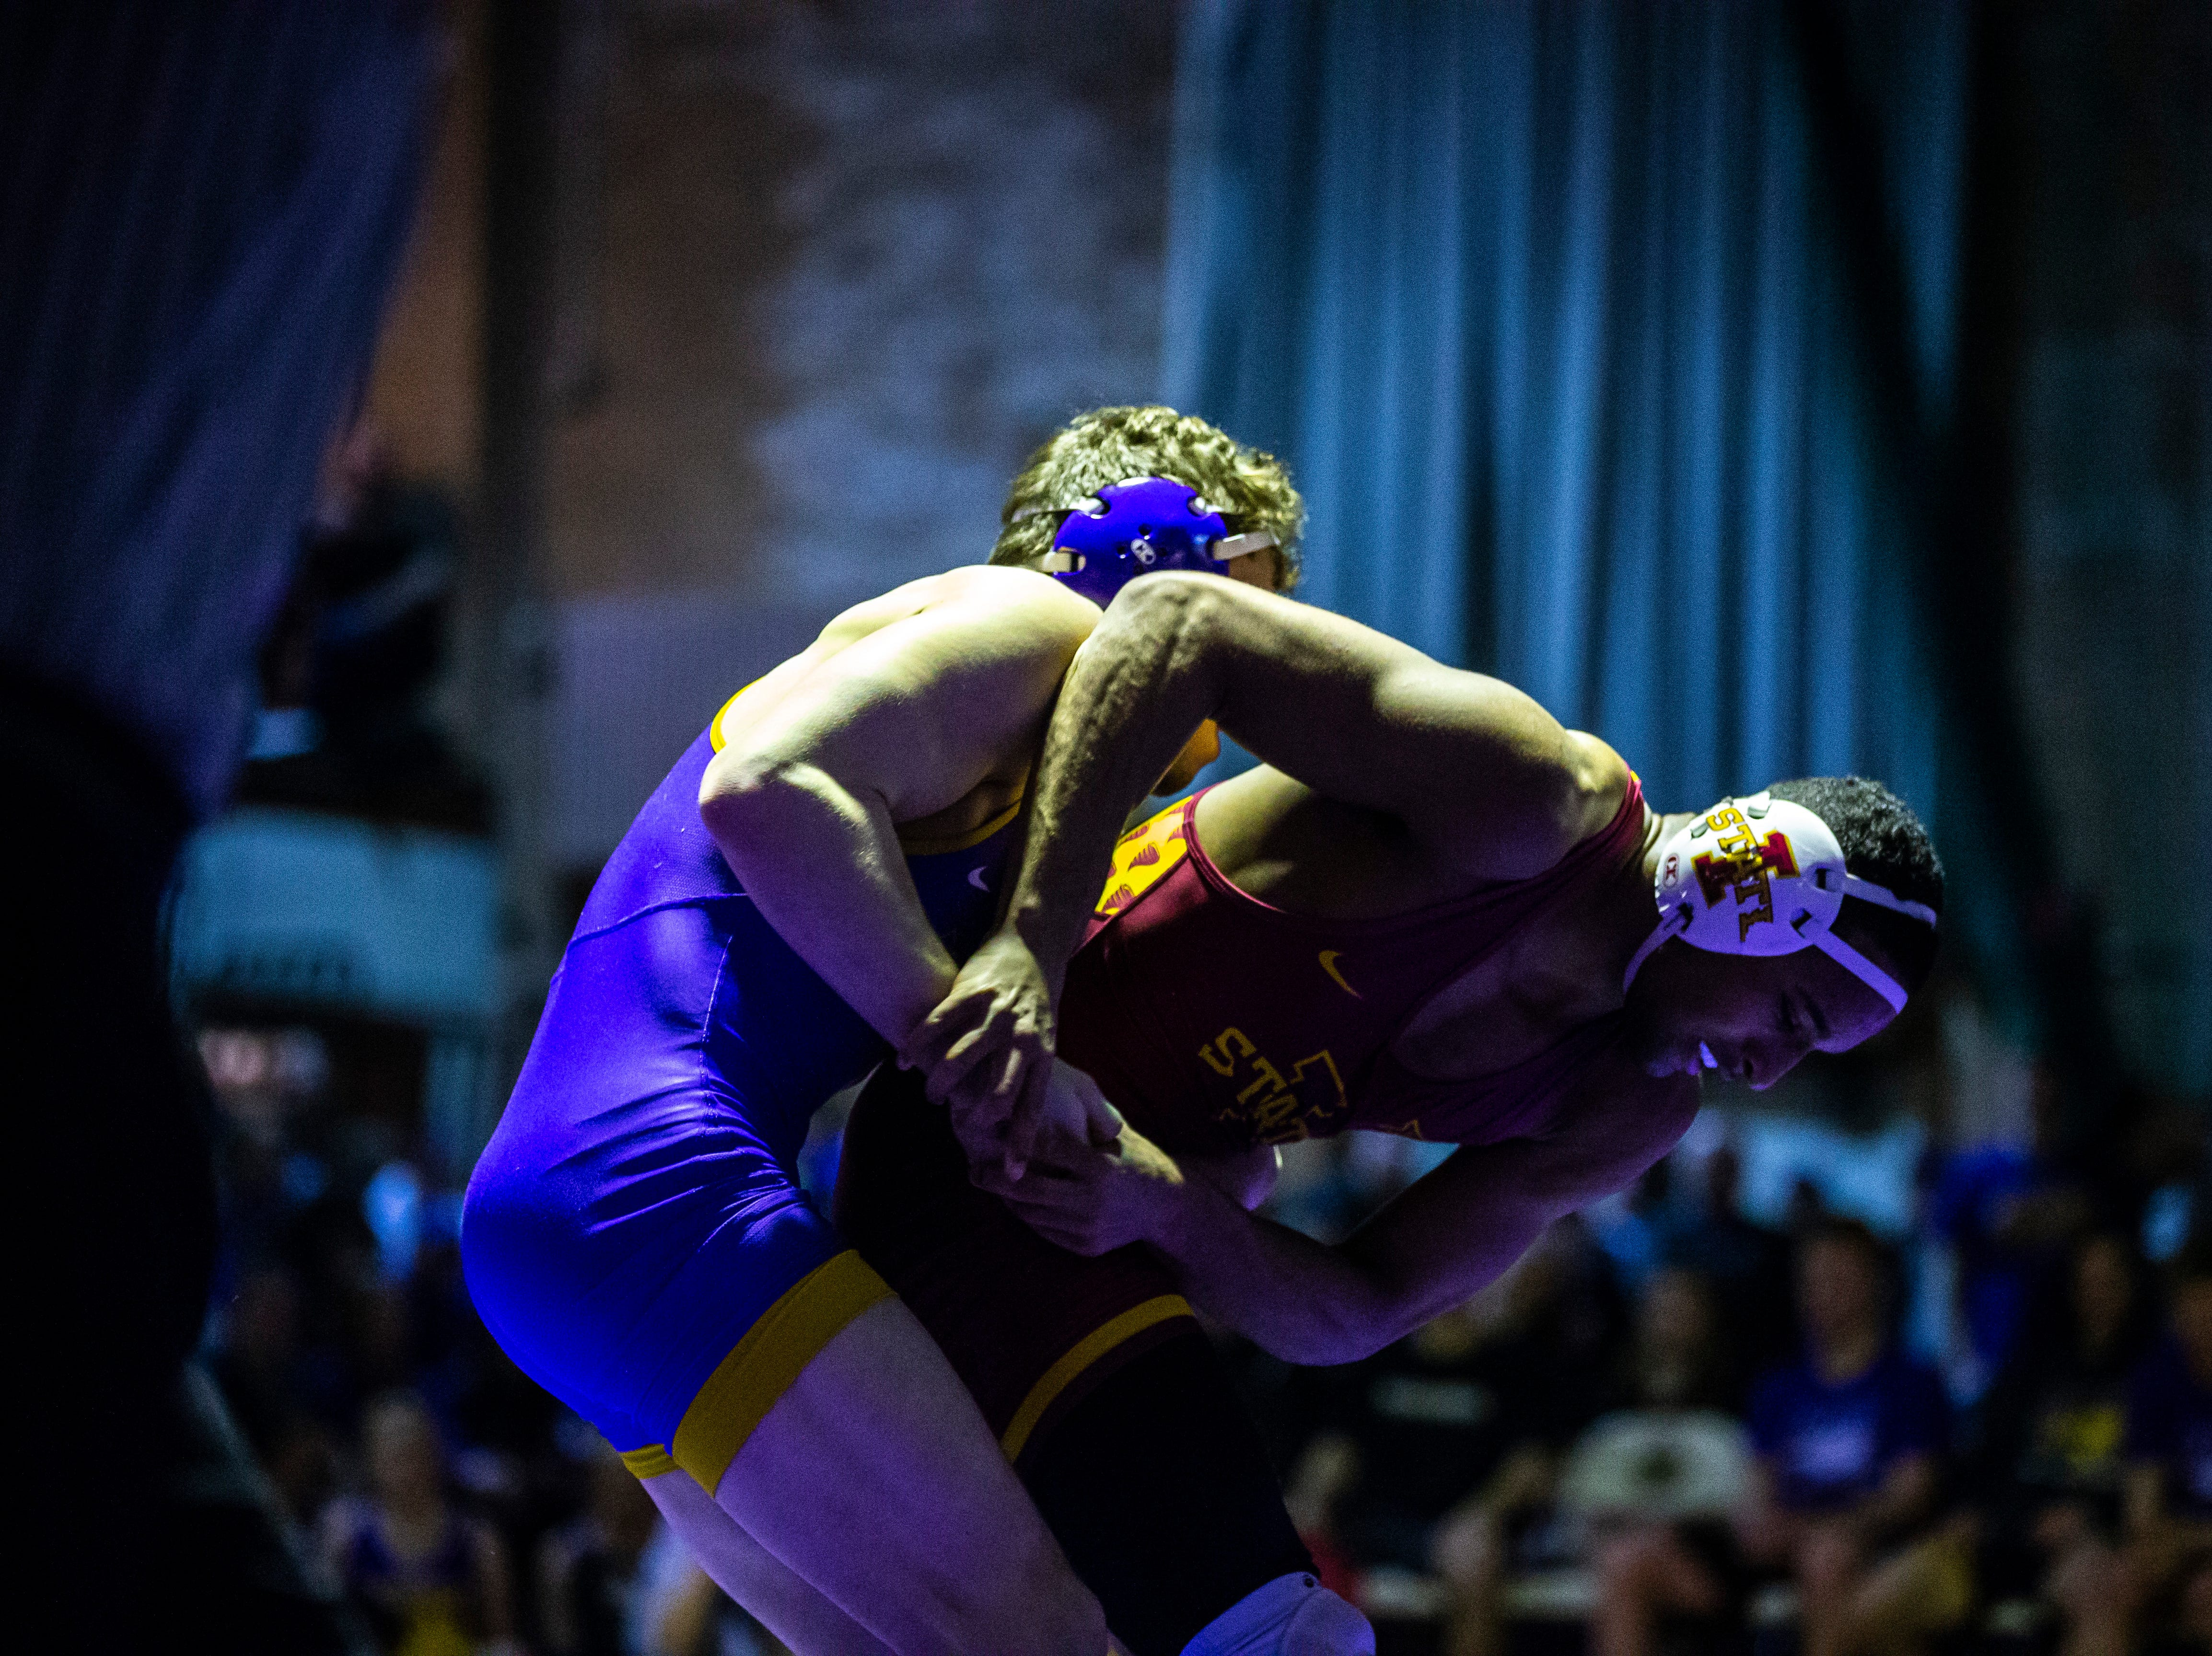 Northern Iowa's Taylor Lujan wrestles Iowa State's Marcus Coleman wrestles at 174 during a NCAA Big 12 wrestling dual on Thursday, Feb. 21, 2019 at the West Gymnasium in Cedar Falls, Iowa.